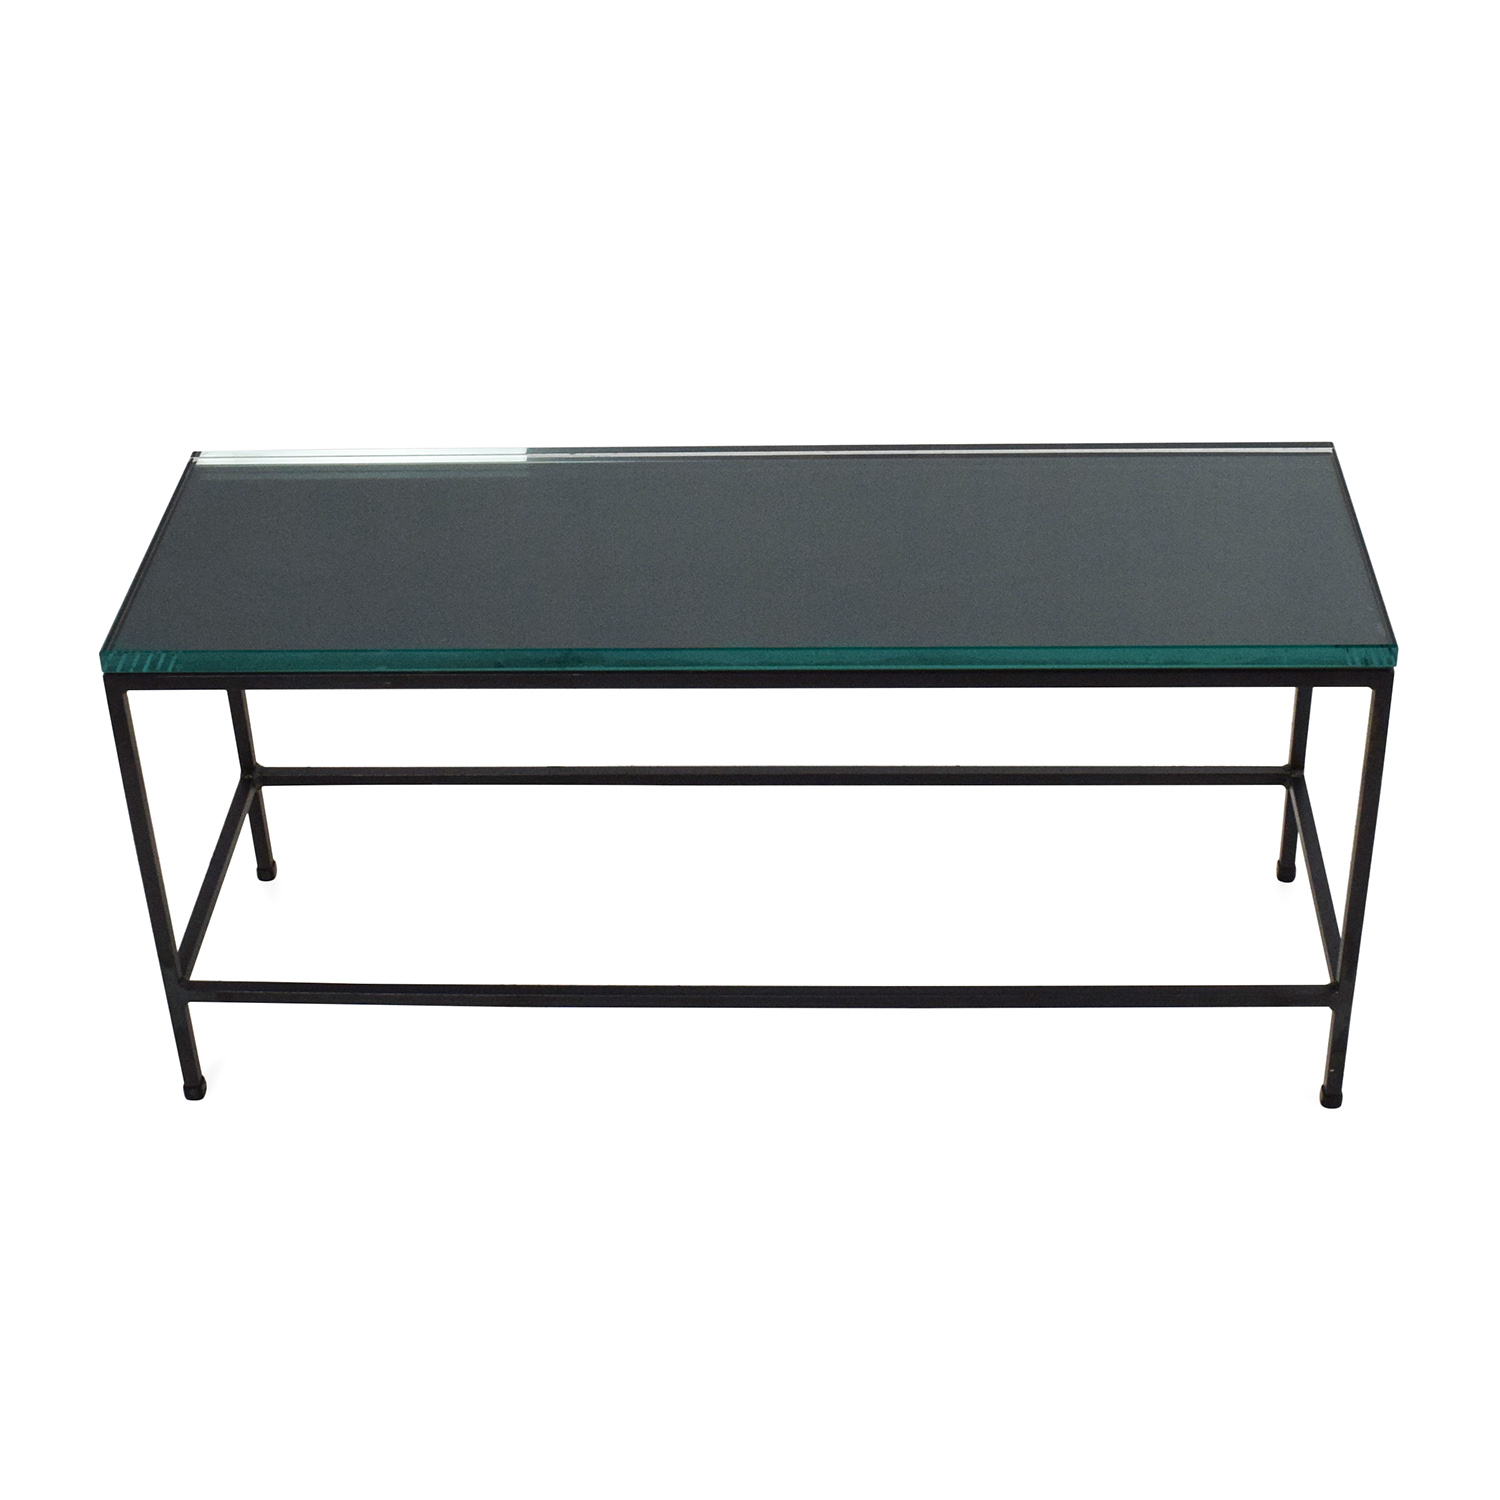 CB2 Glass Top Coffee Table sale